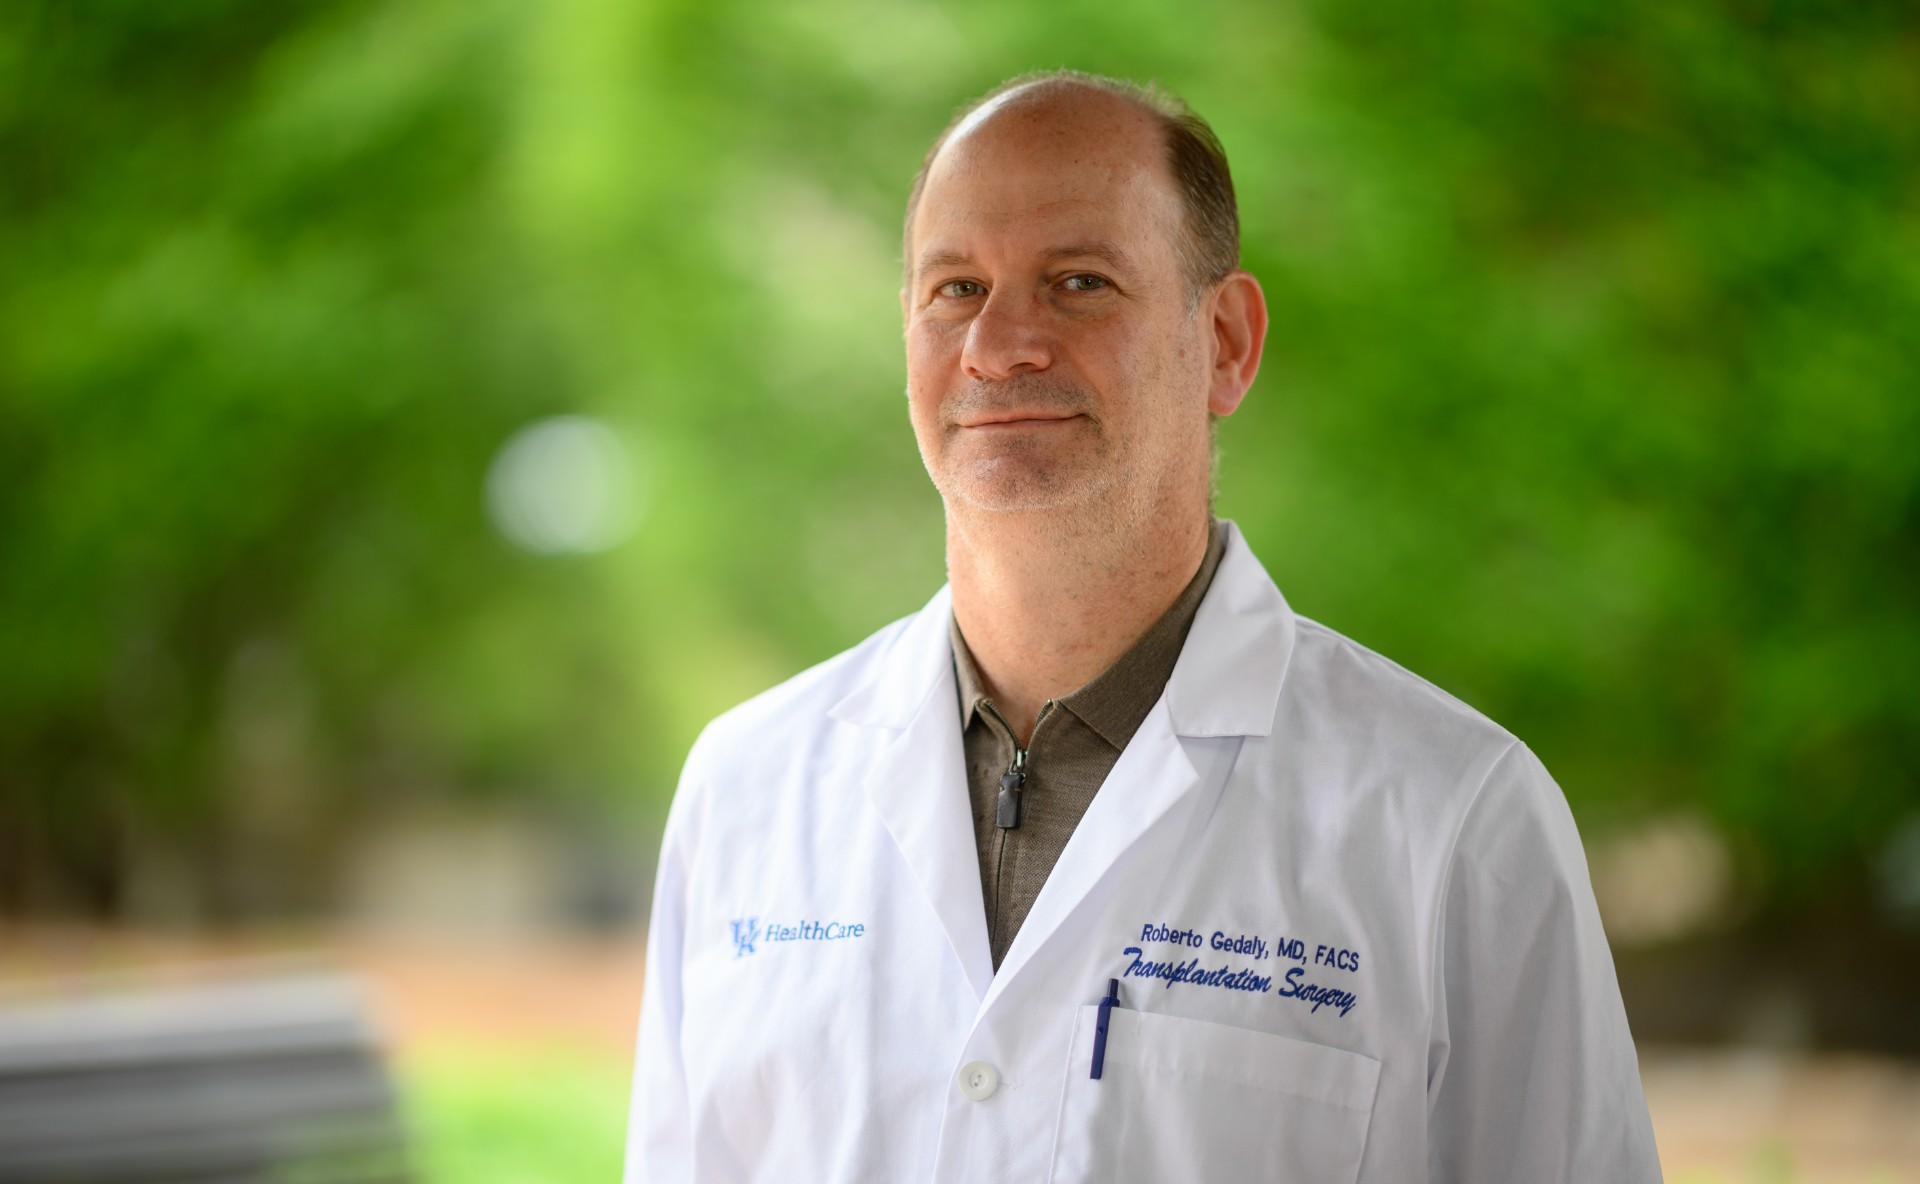 Dr. Roberto Gedaly, an older white man with greying brunette hair, smiles as he looks right at the camera. He is wearing a white lab coat over a brown zip-up shirt.